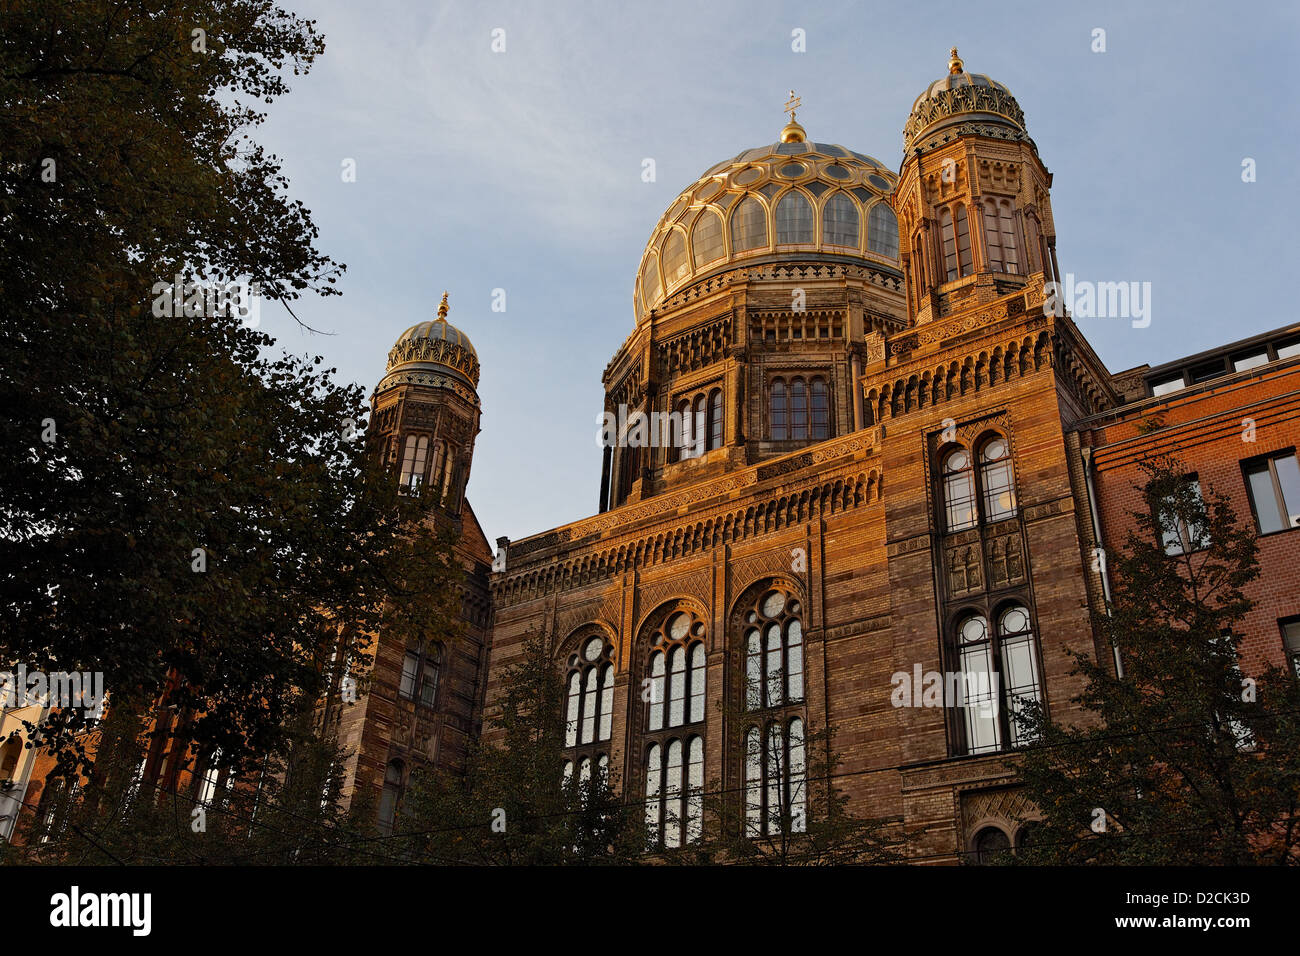 Berlin Synagogue in evening light - Stock Image